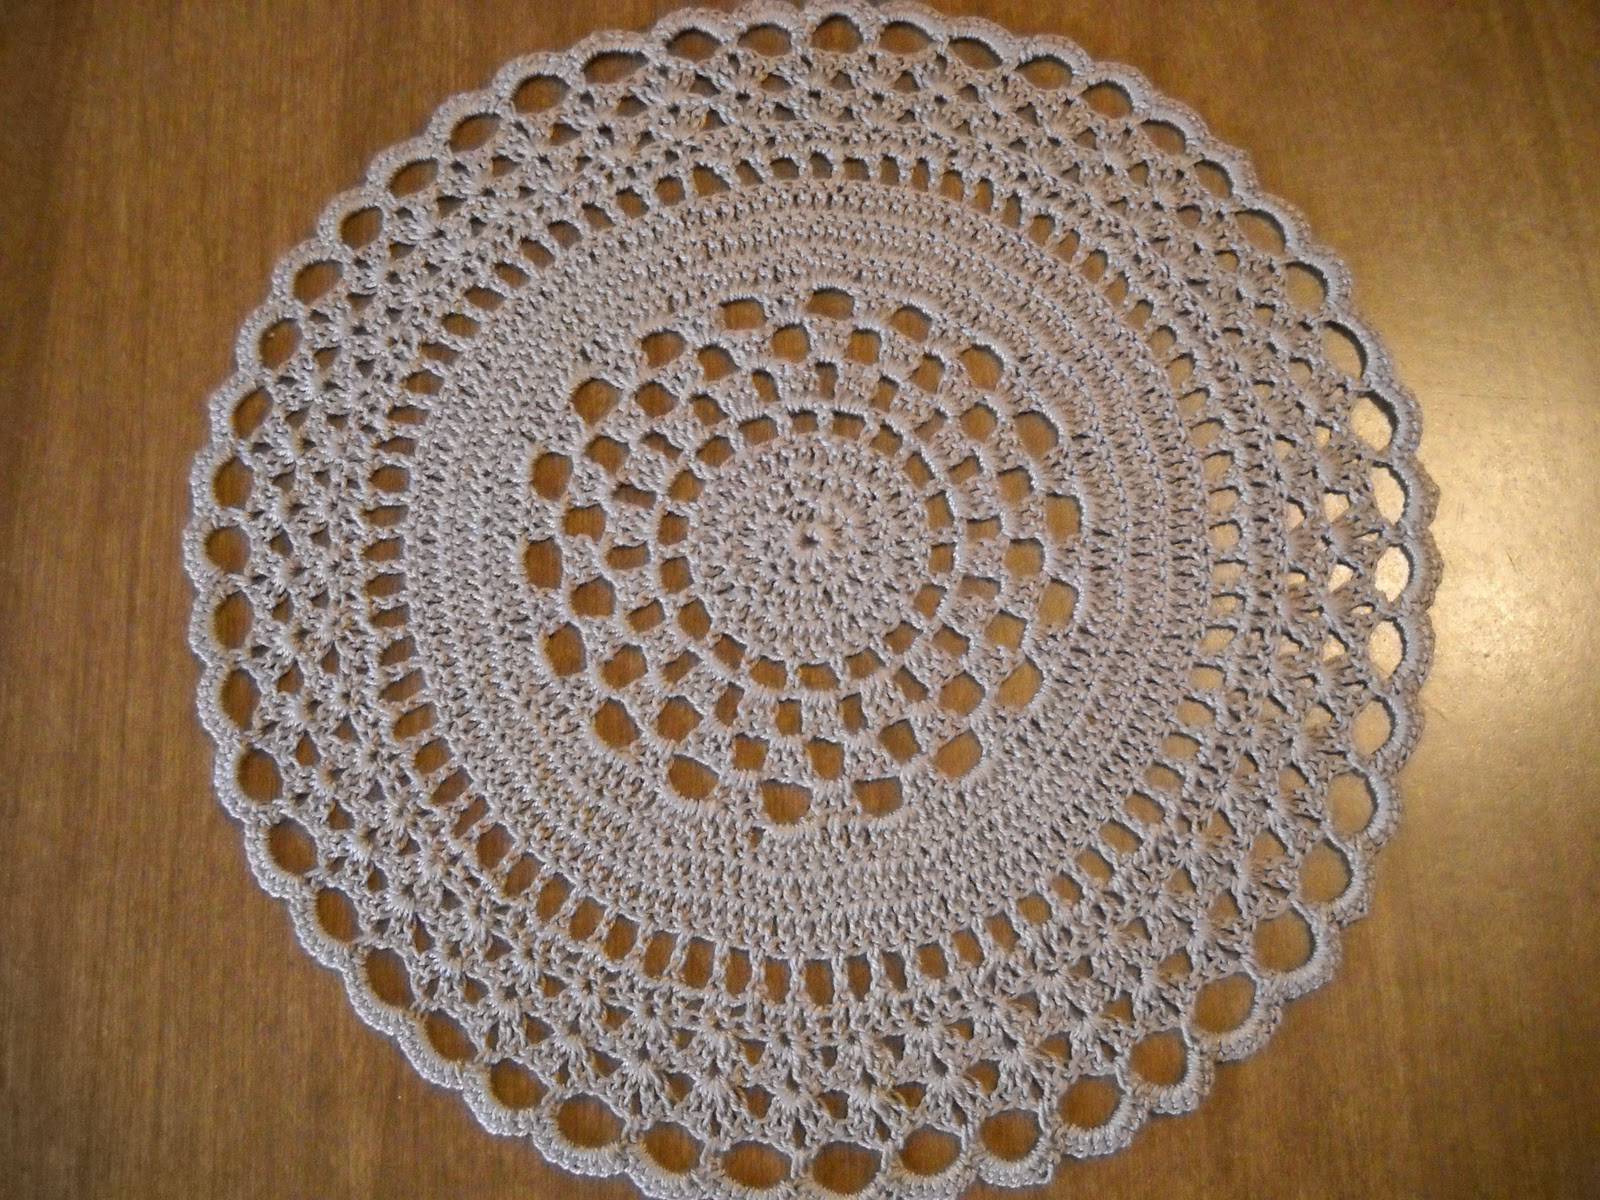 Best Of Crochet Galore Birthday Doily November Doily Of the Month Crochet Thread Size 10 Free Patterns Of Delightful 50 Models Crochet Thread Size 10 Free Patterns